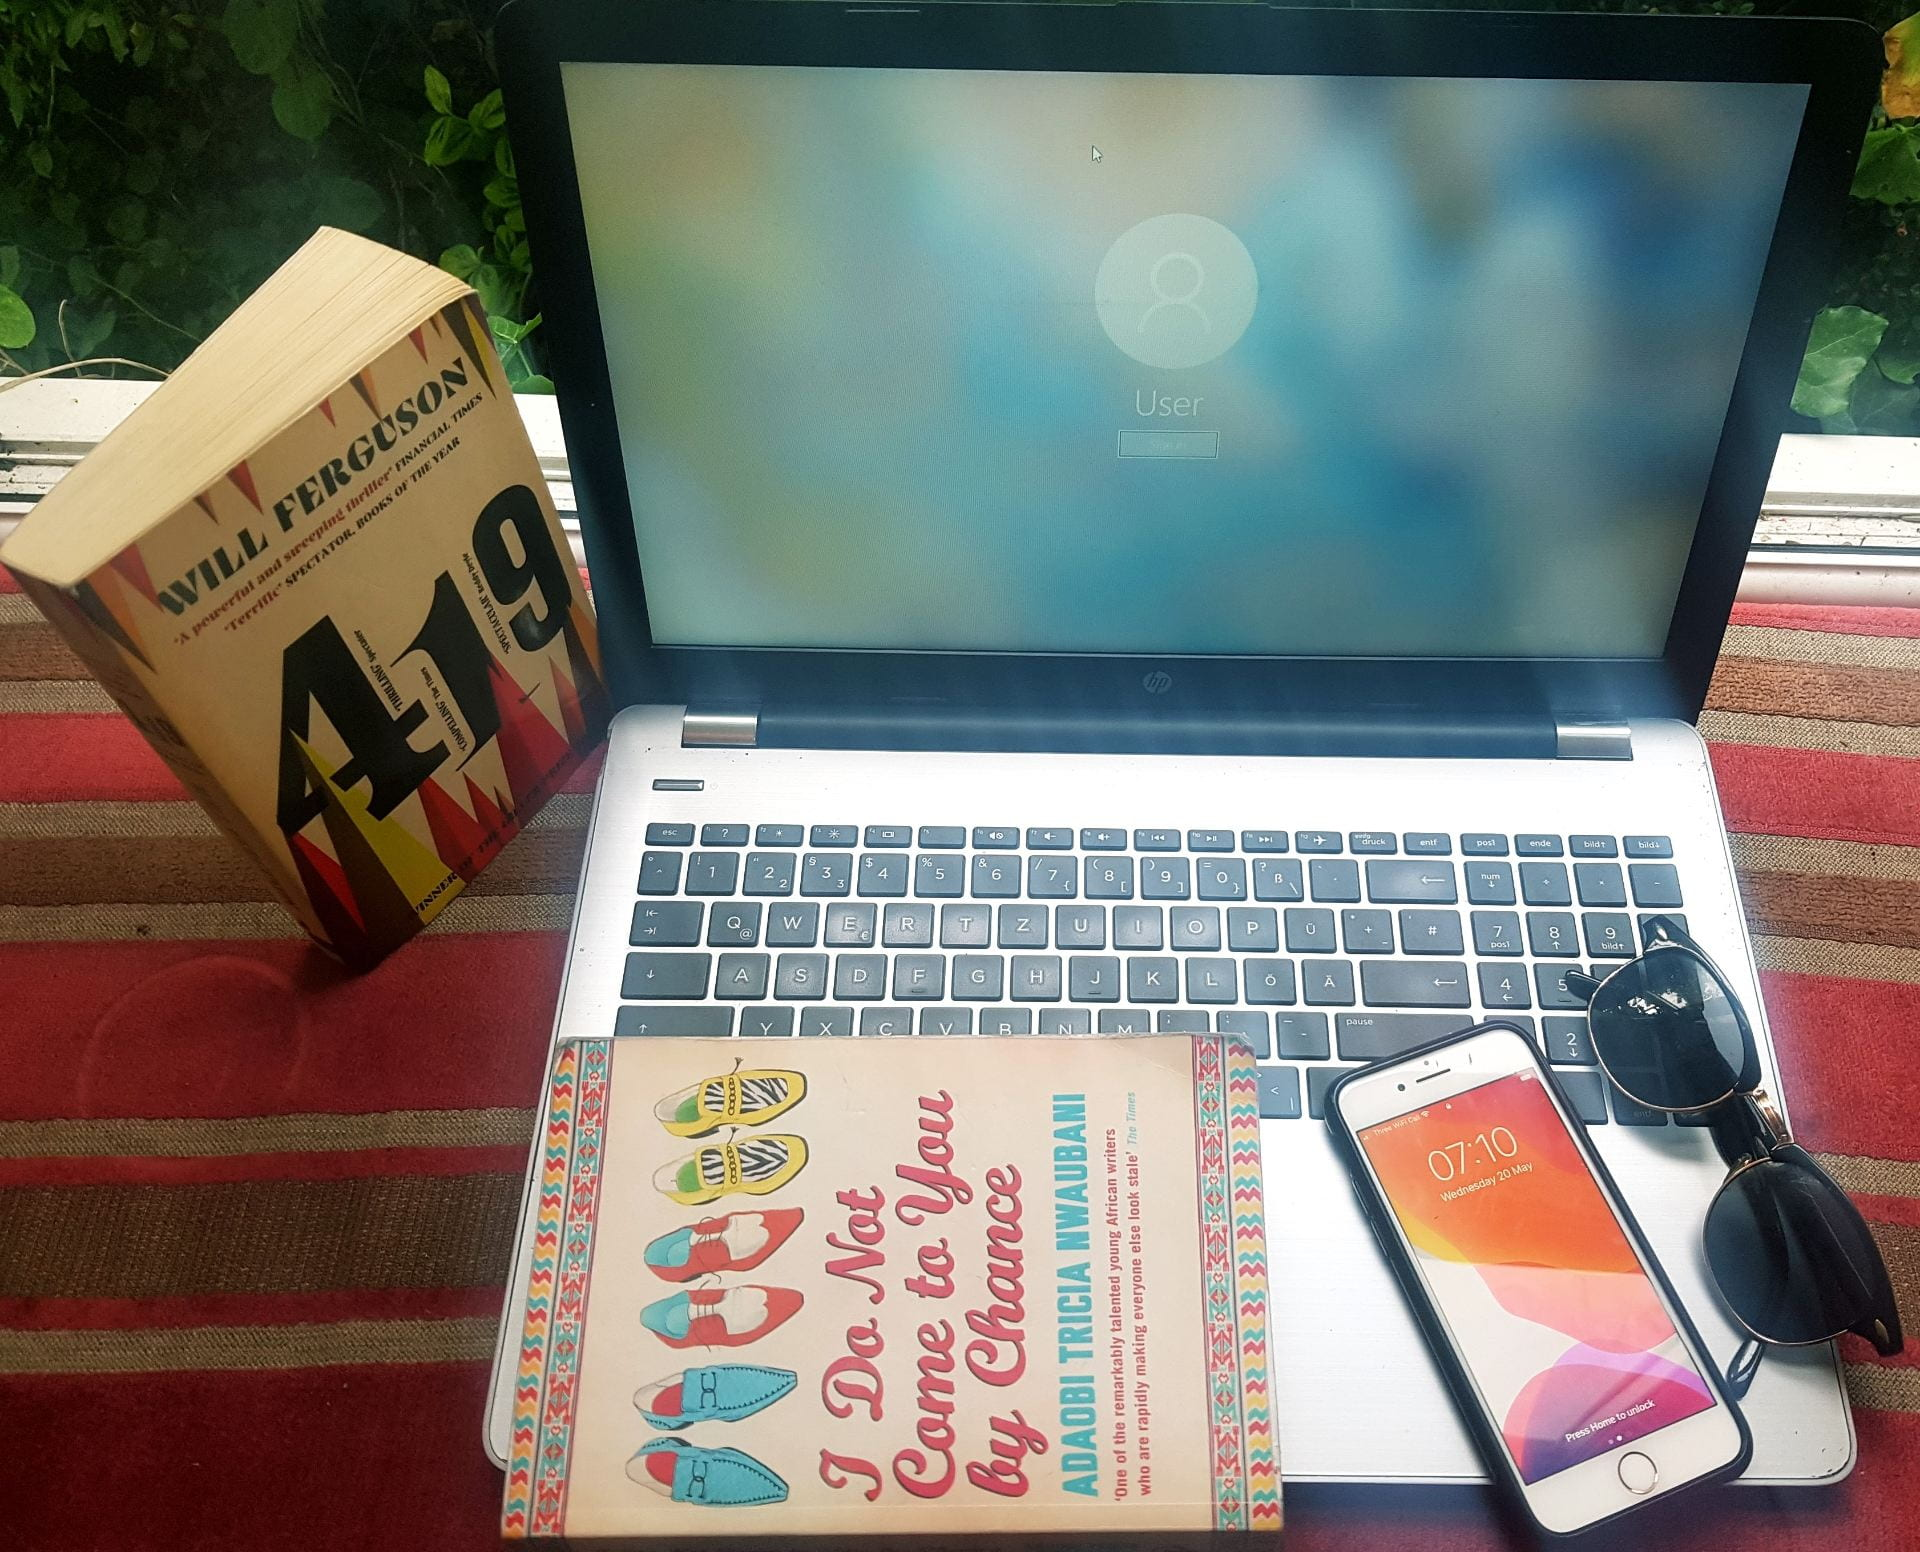 A MacBook laptop. On top of it is a novel ('I Do Not Come to You by Chance' by Adaobi Tricia Nwaubani), an iPhone and a pair of sunglasses.. To the left of the MacBook is another novel: '419' by Will Ferguson.